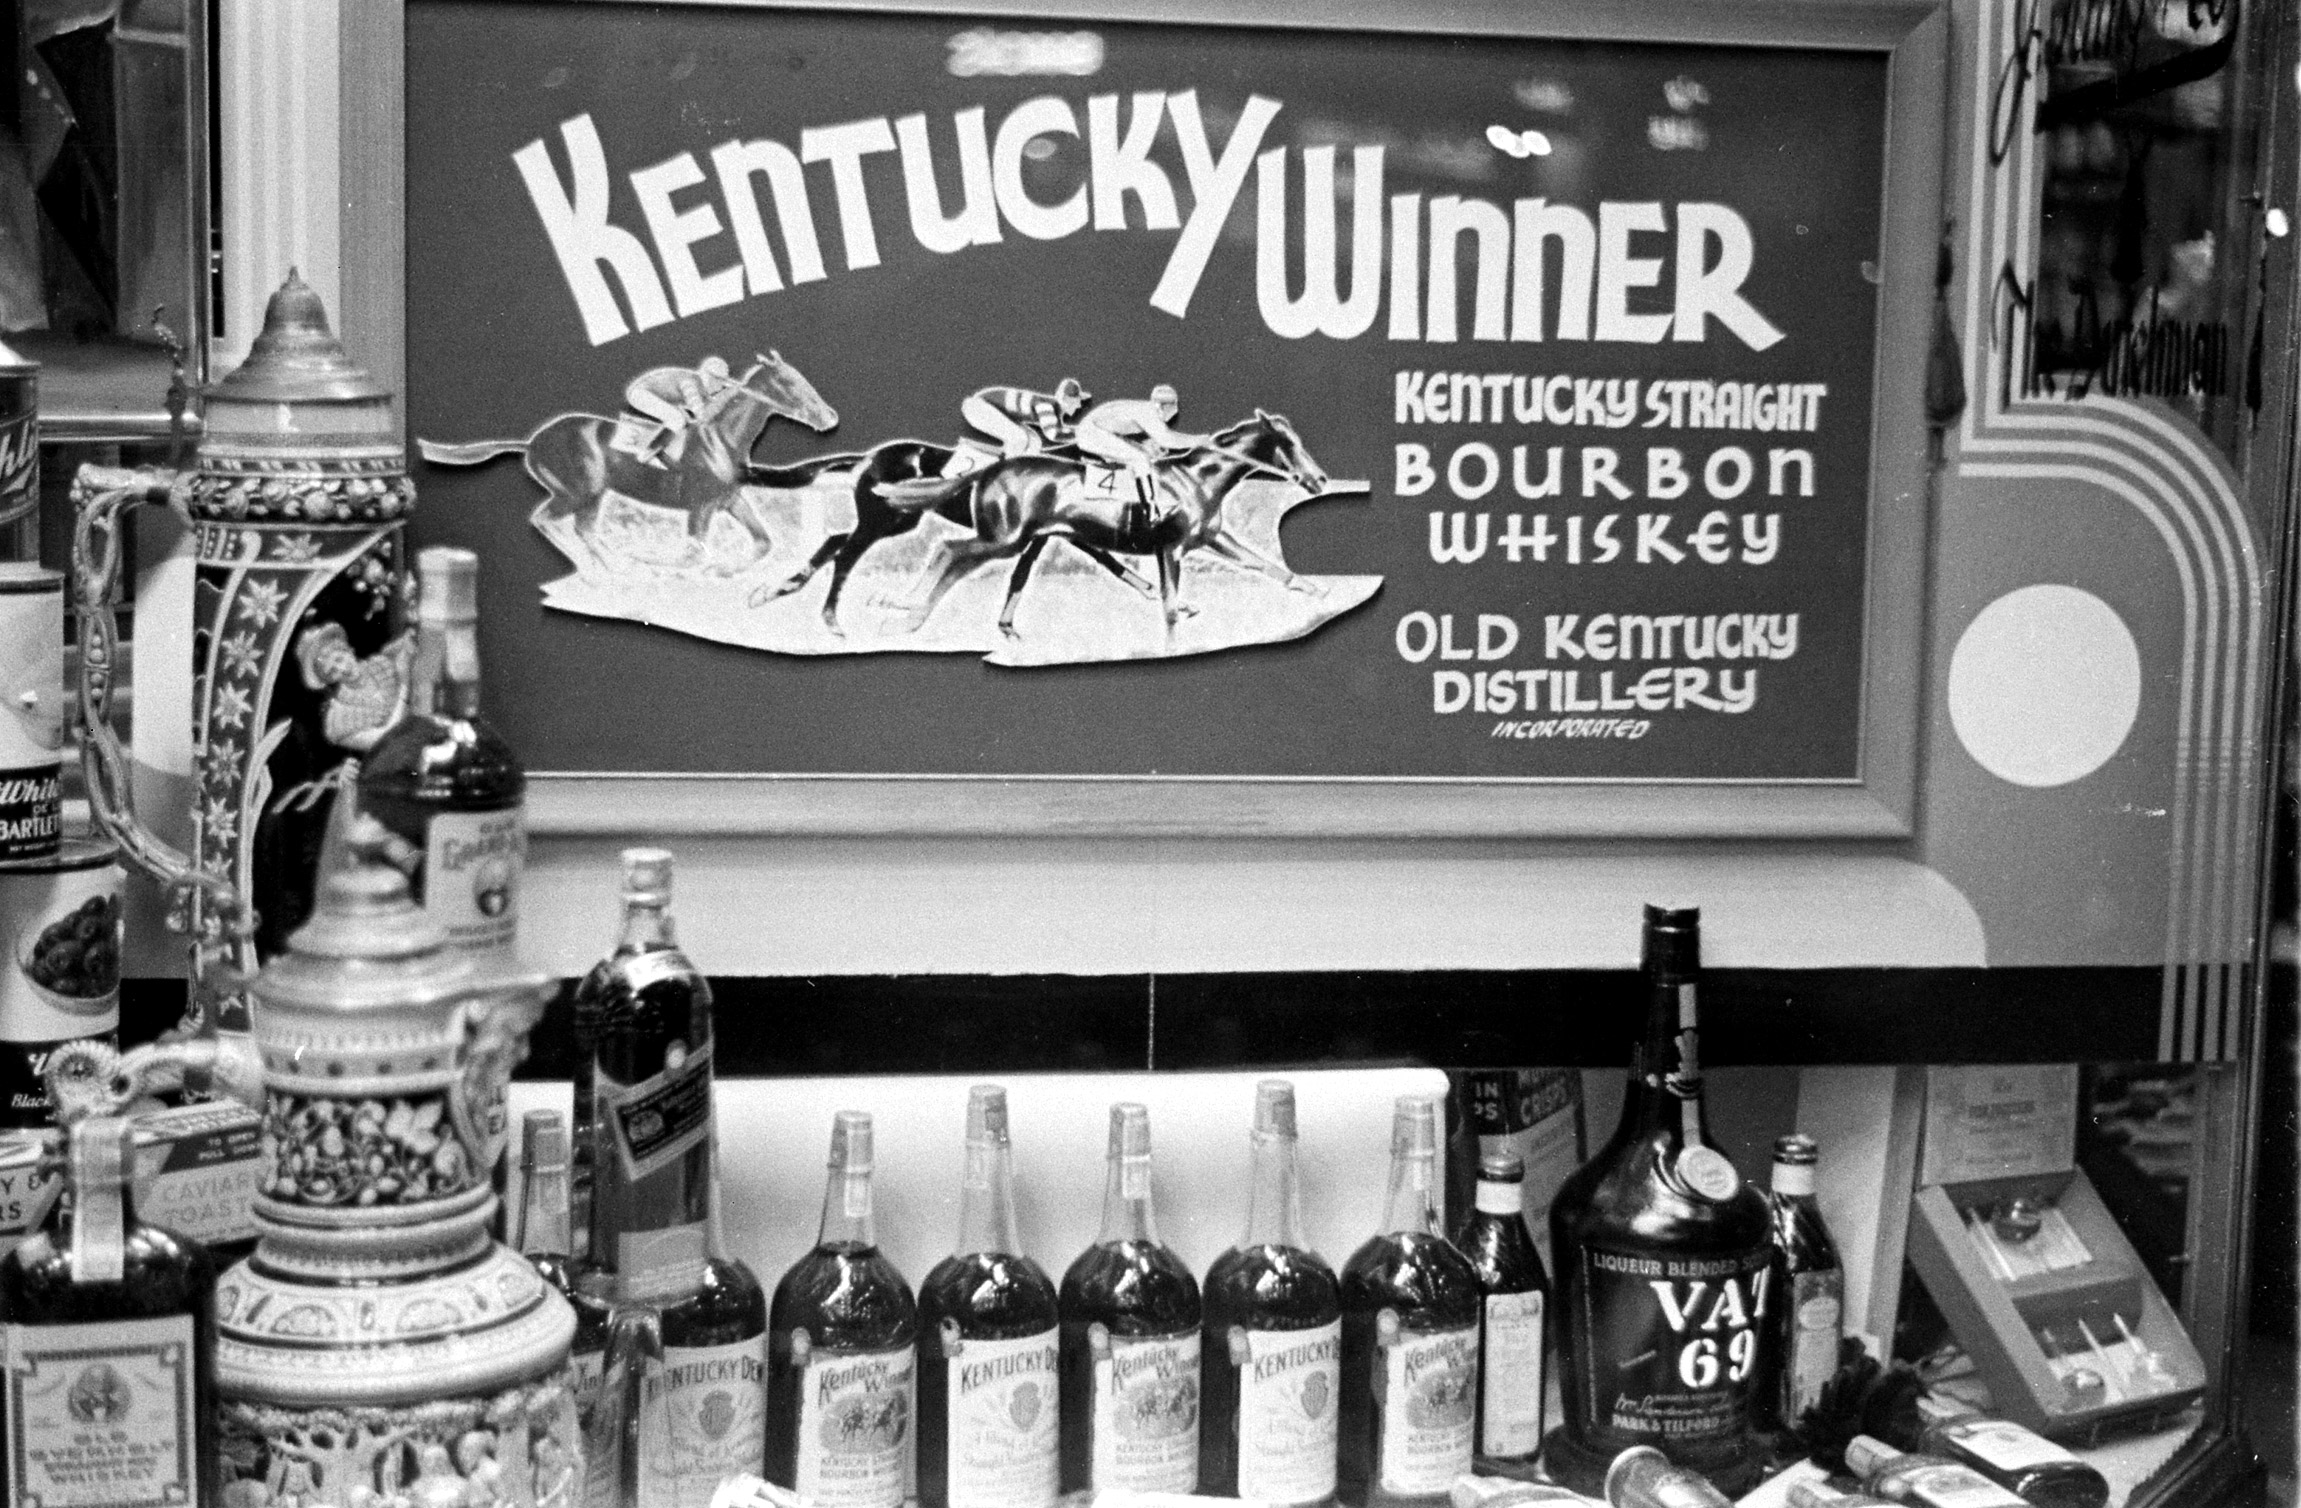 Bourbon display at the 1937 Kentucky Derby.